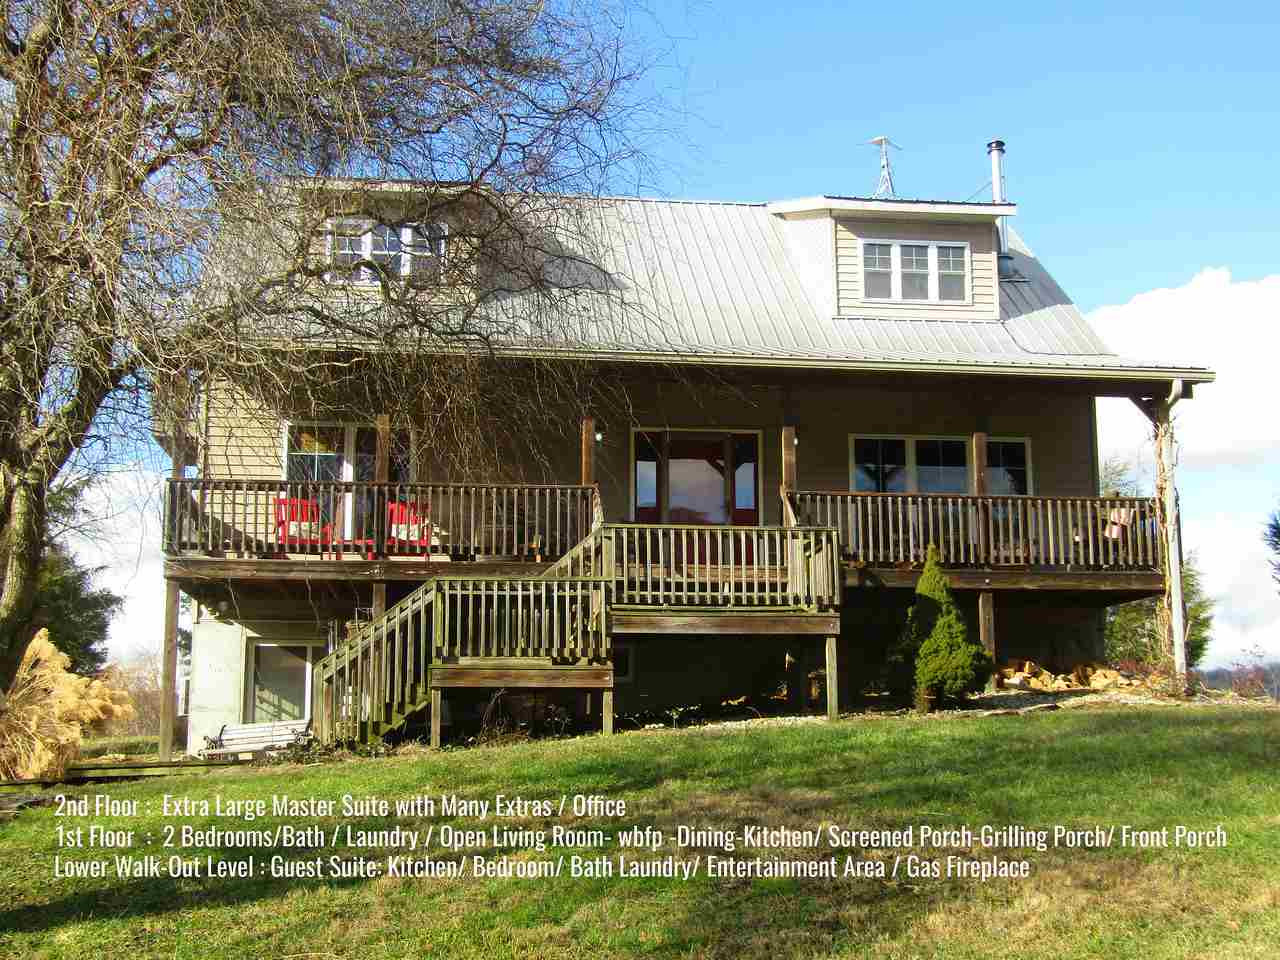 505 EAGLE VALLEY RD Sanders, KY